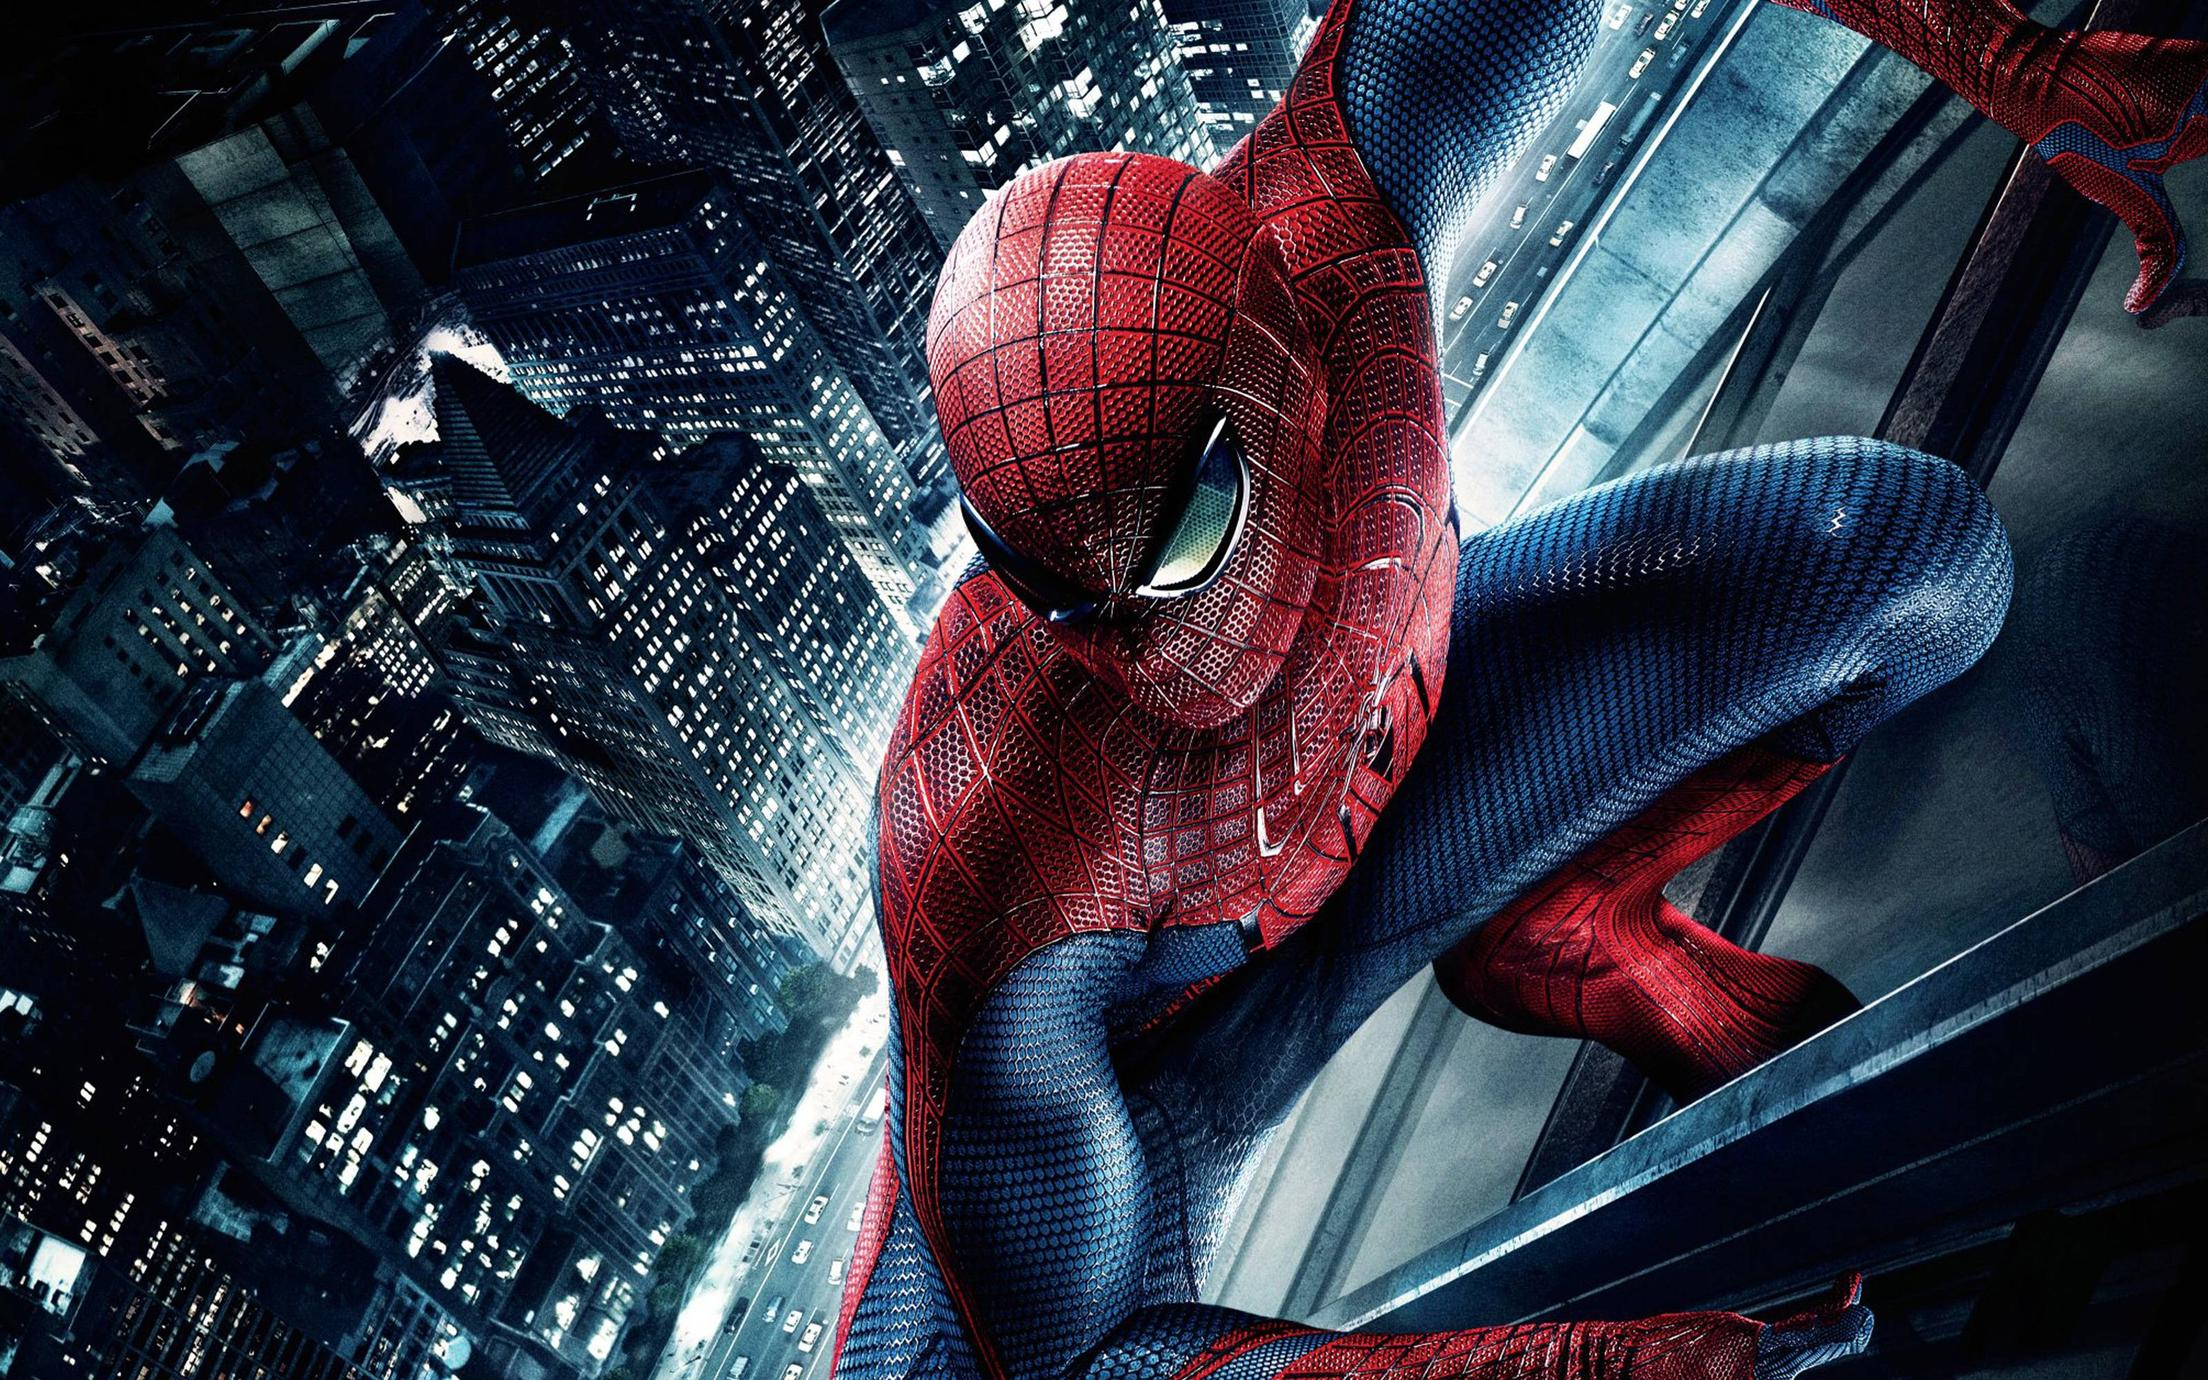 Daily Wallpaper The Amazing Spiderman I Like To Waste My Time